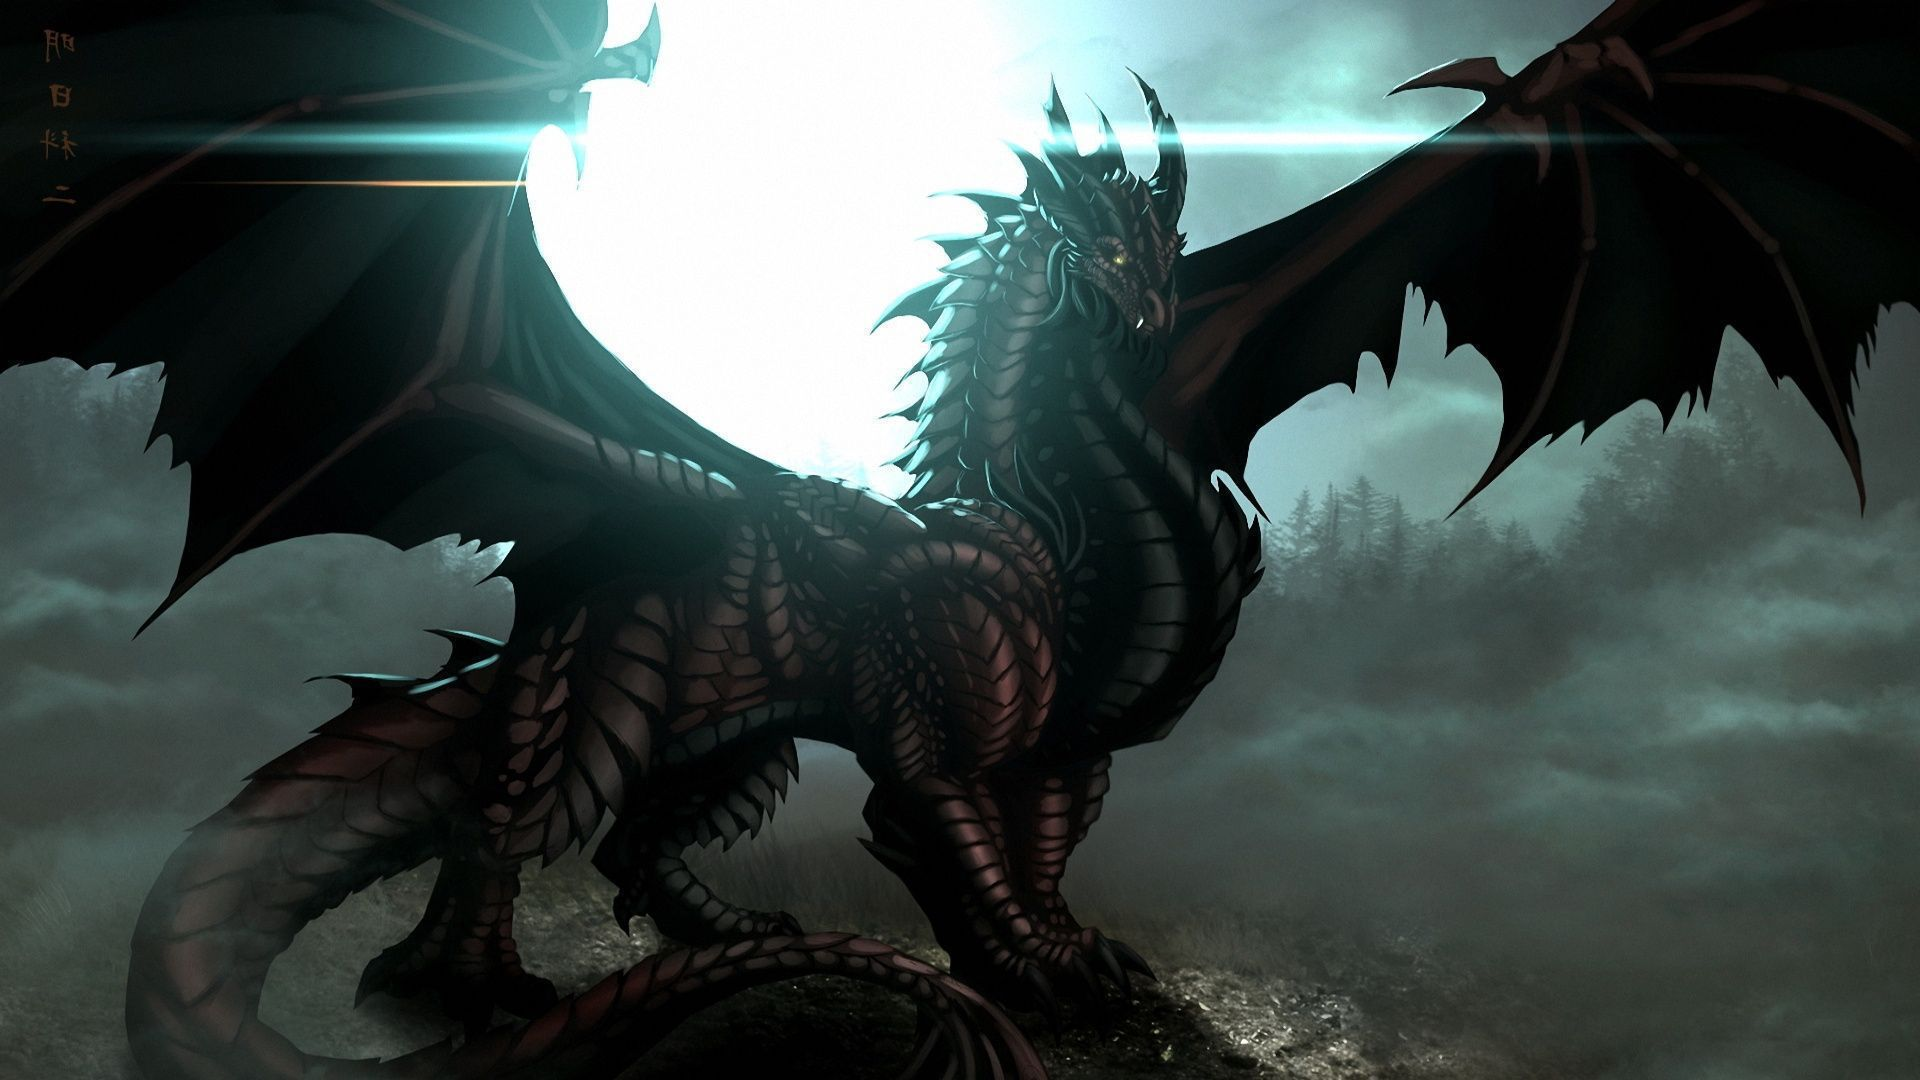 Black Dragon Computer Wallpaper